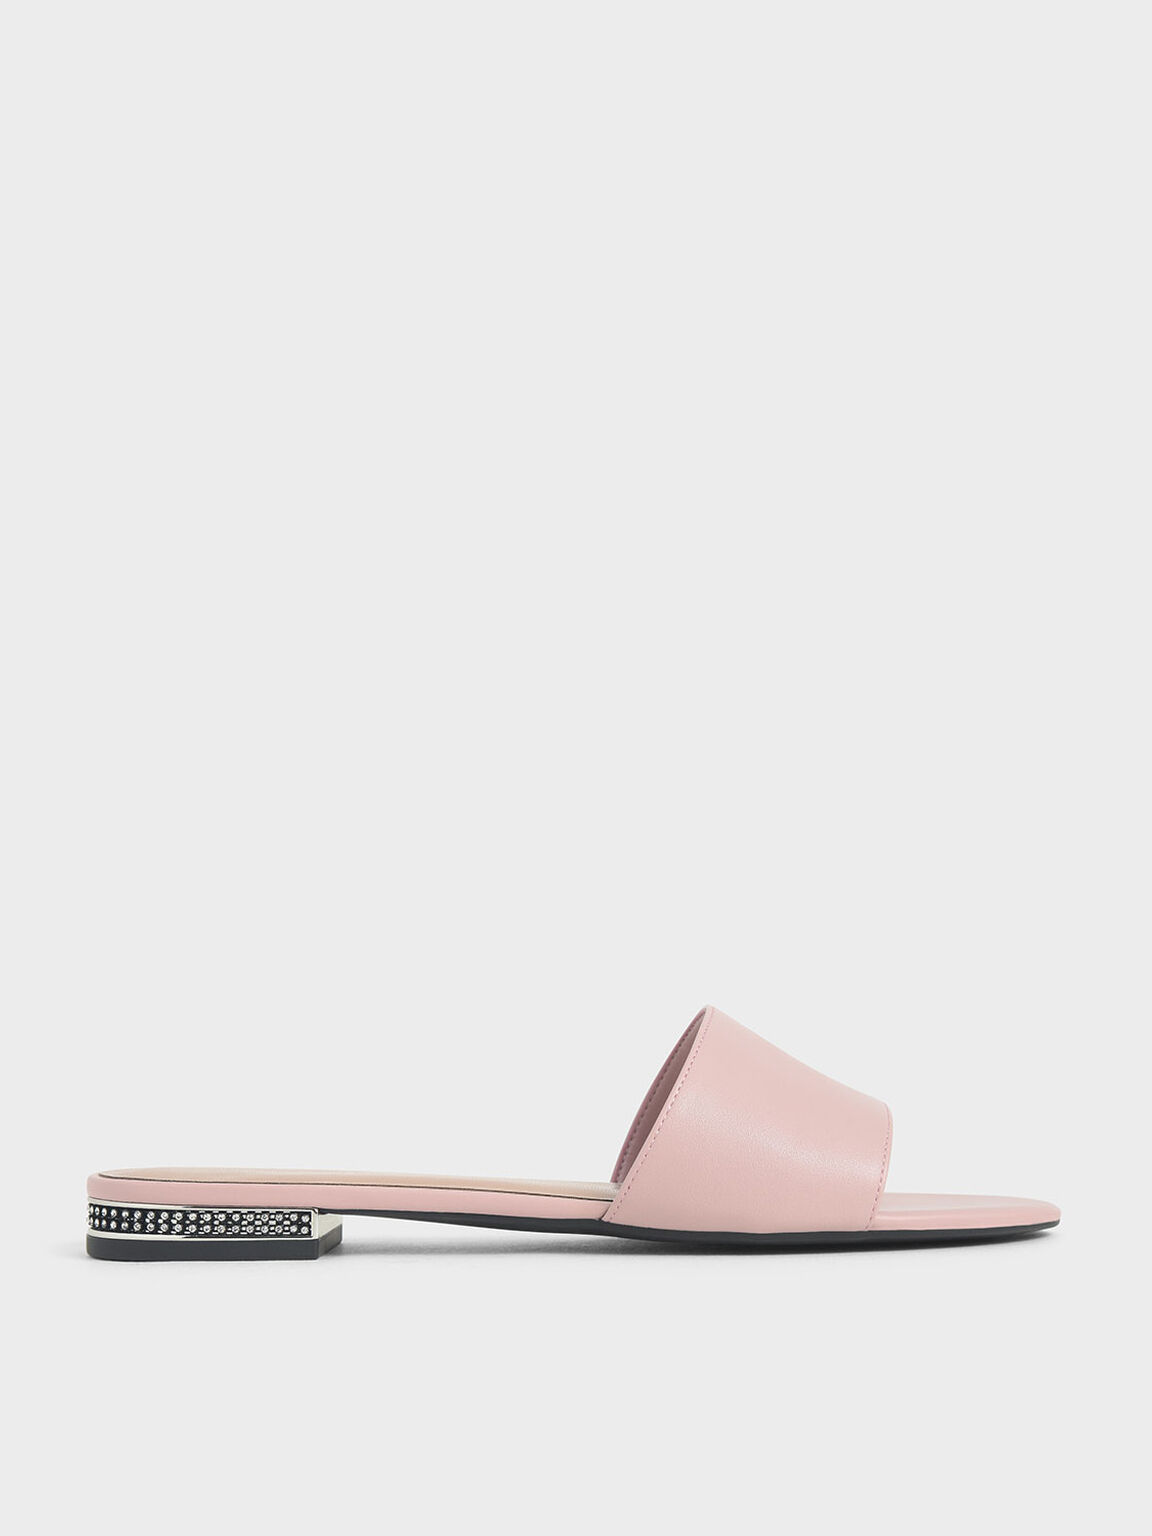 Gem-Encrusted Heel Slide Sandals, Pink, hi-res